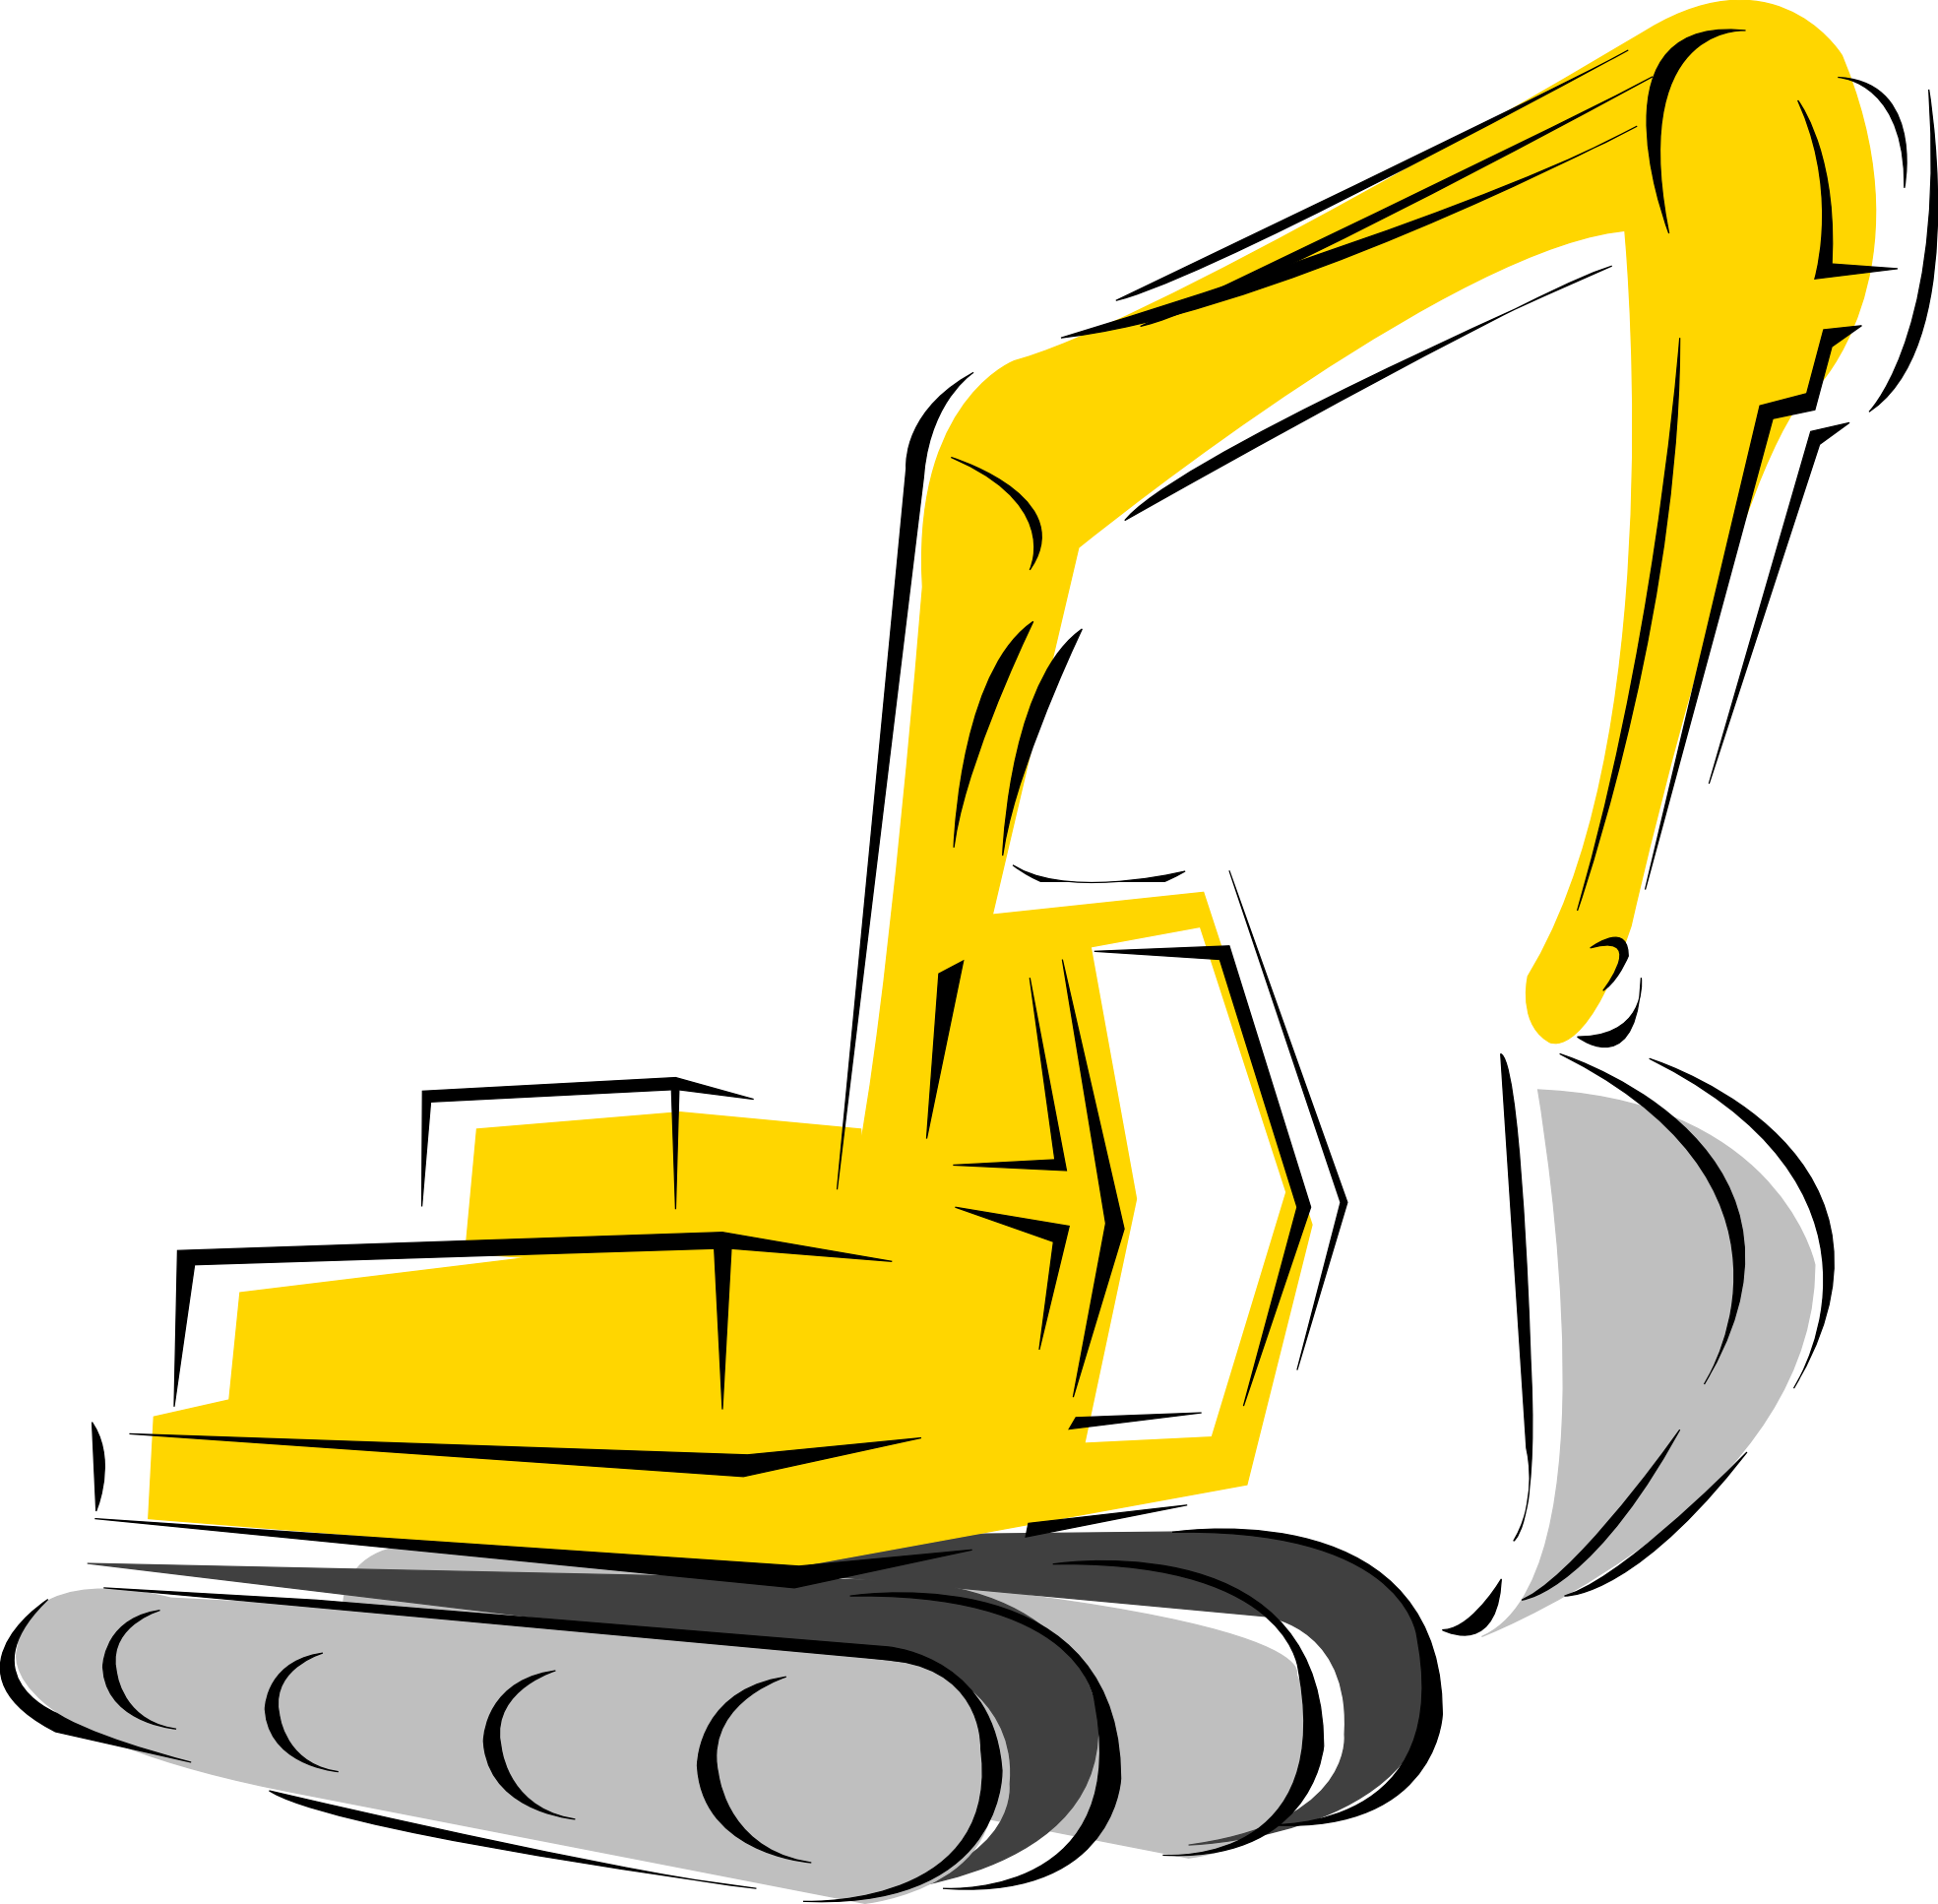 Crane Equipment Clip Art